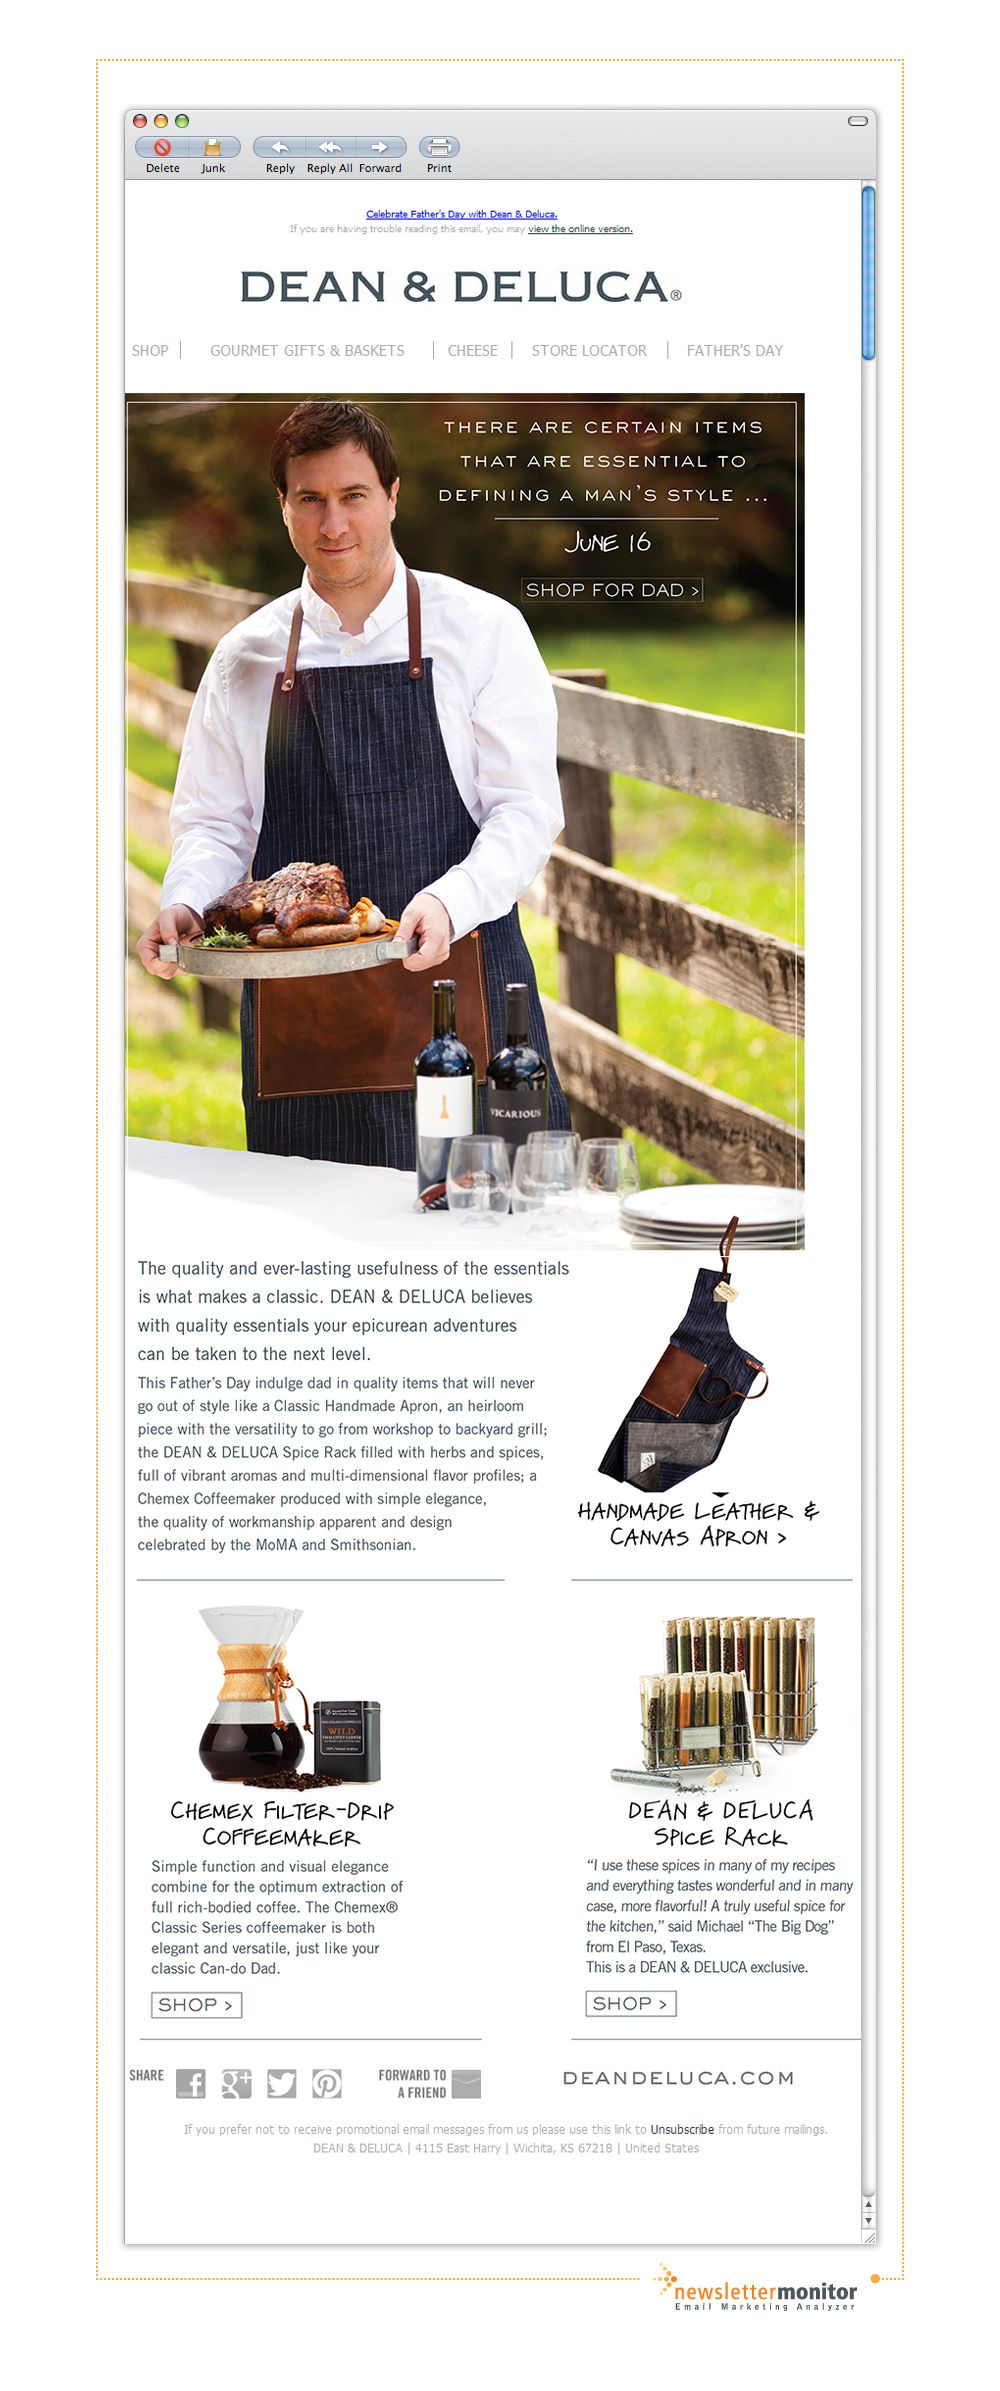 Brand: Dean & Deluca   Subject: Essentials of Good Taste for Father's Day: Classic Never Goes Out of Style